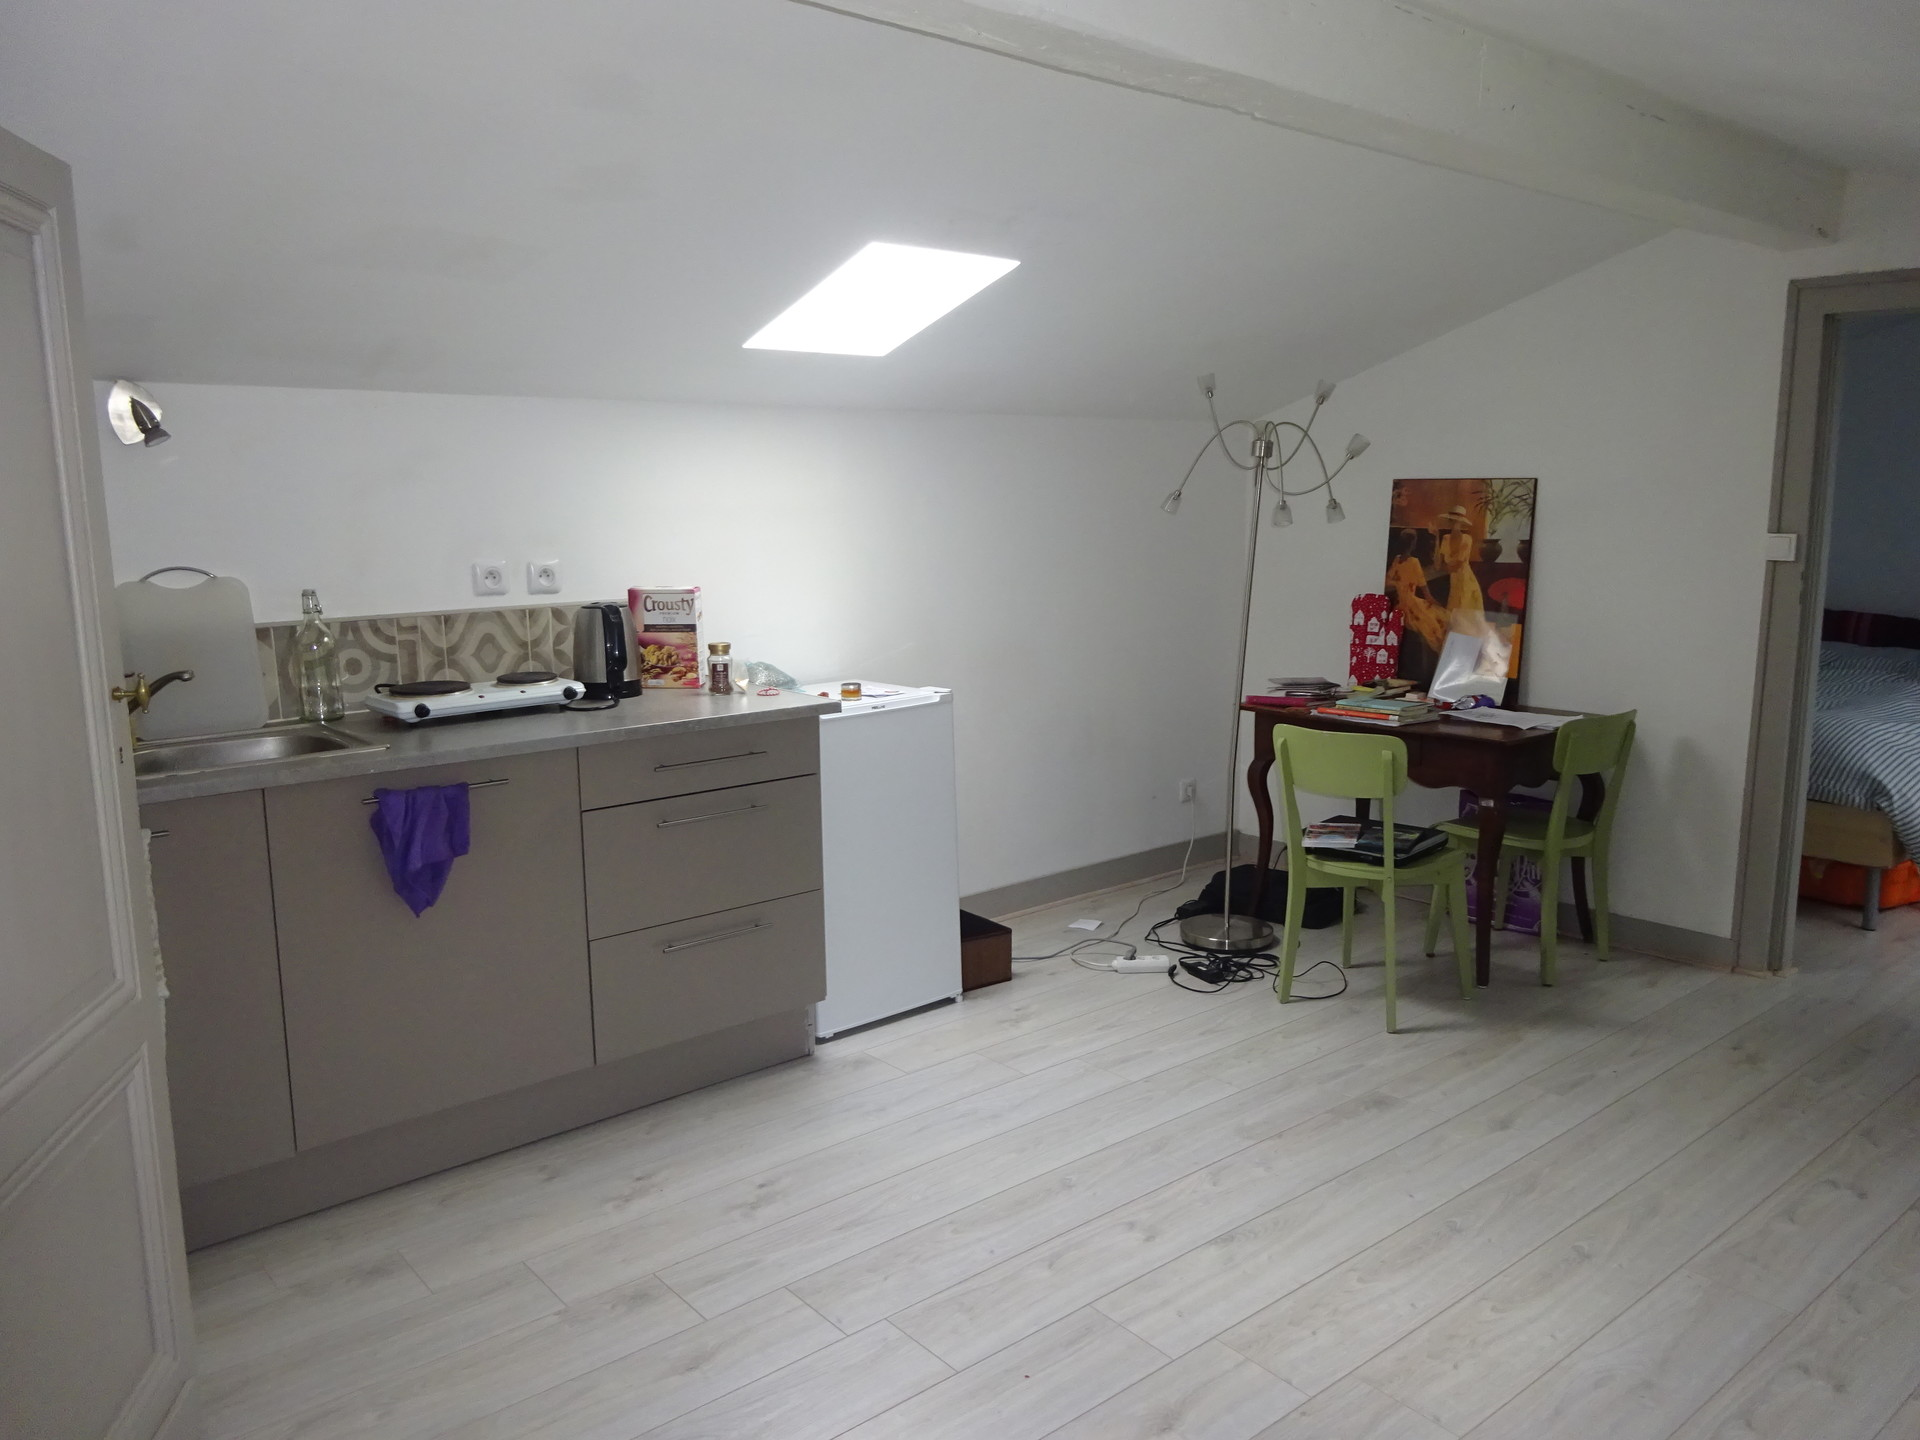 Appartement meubl de 30m2 nansouty location for Location appartement cub bordeaux